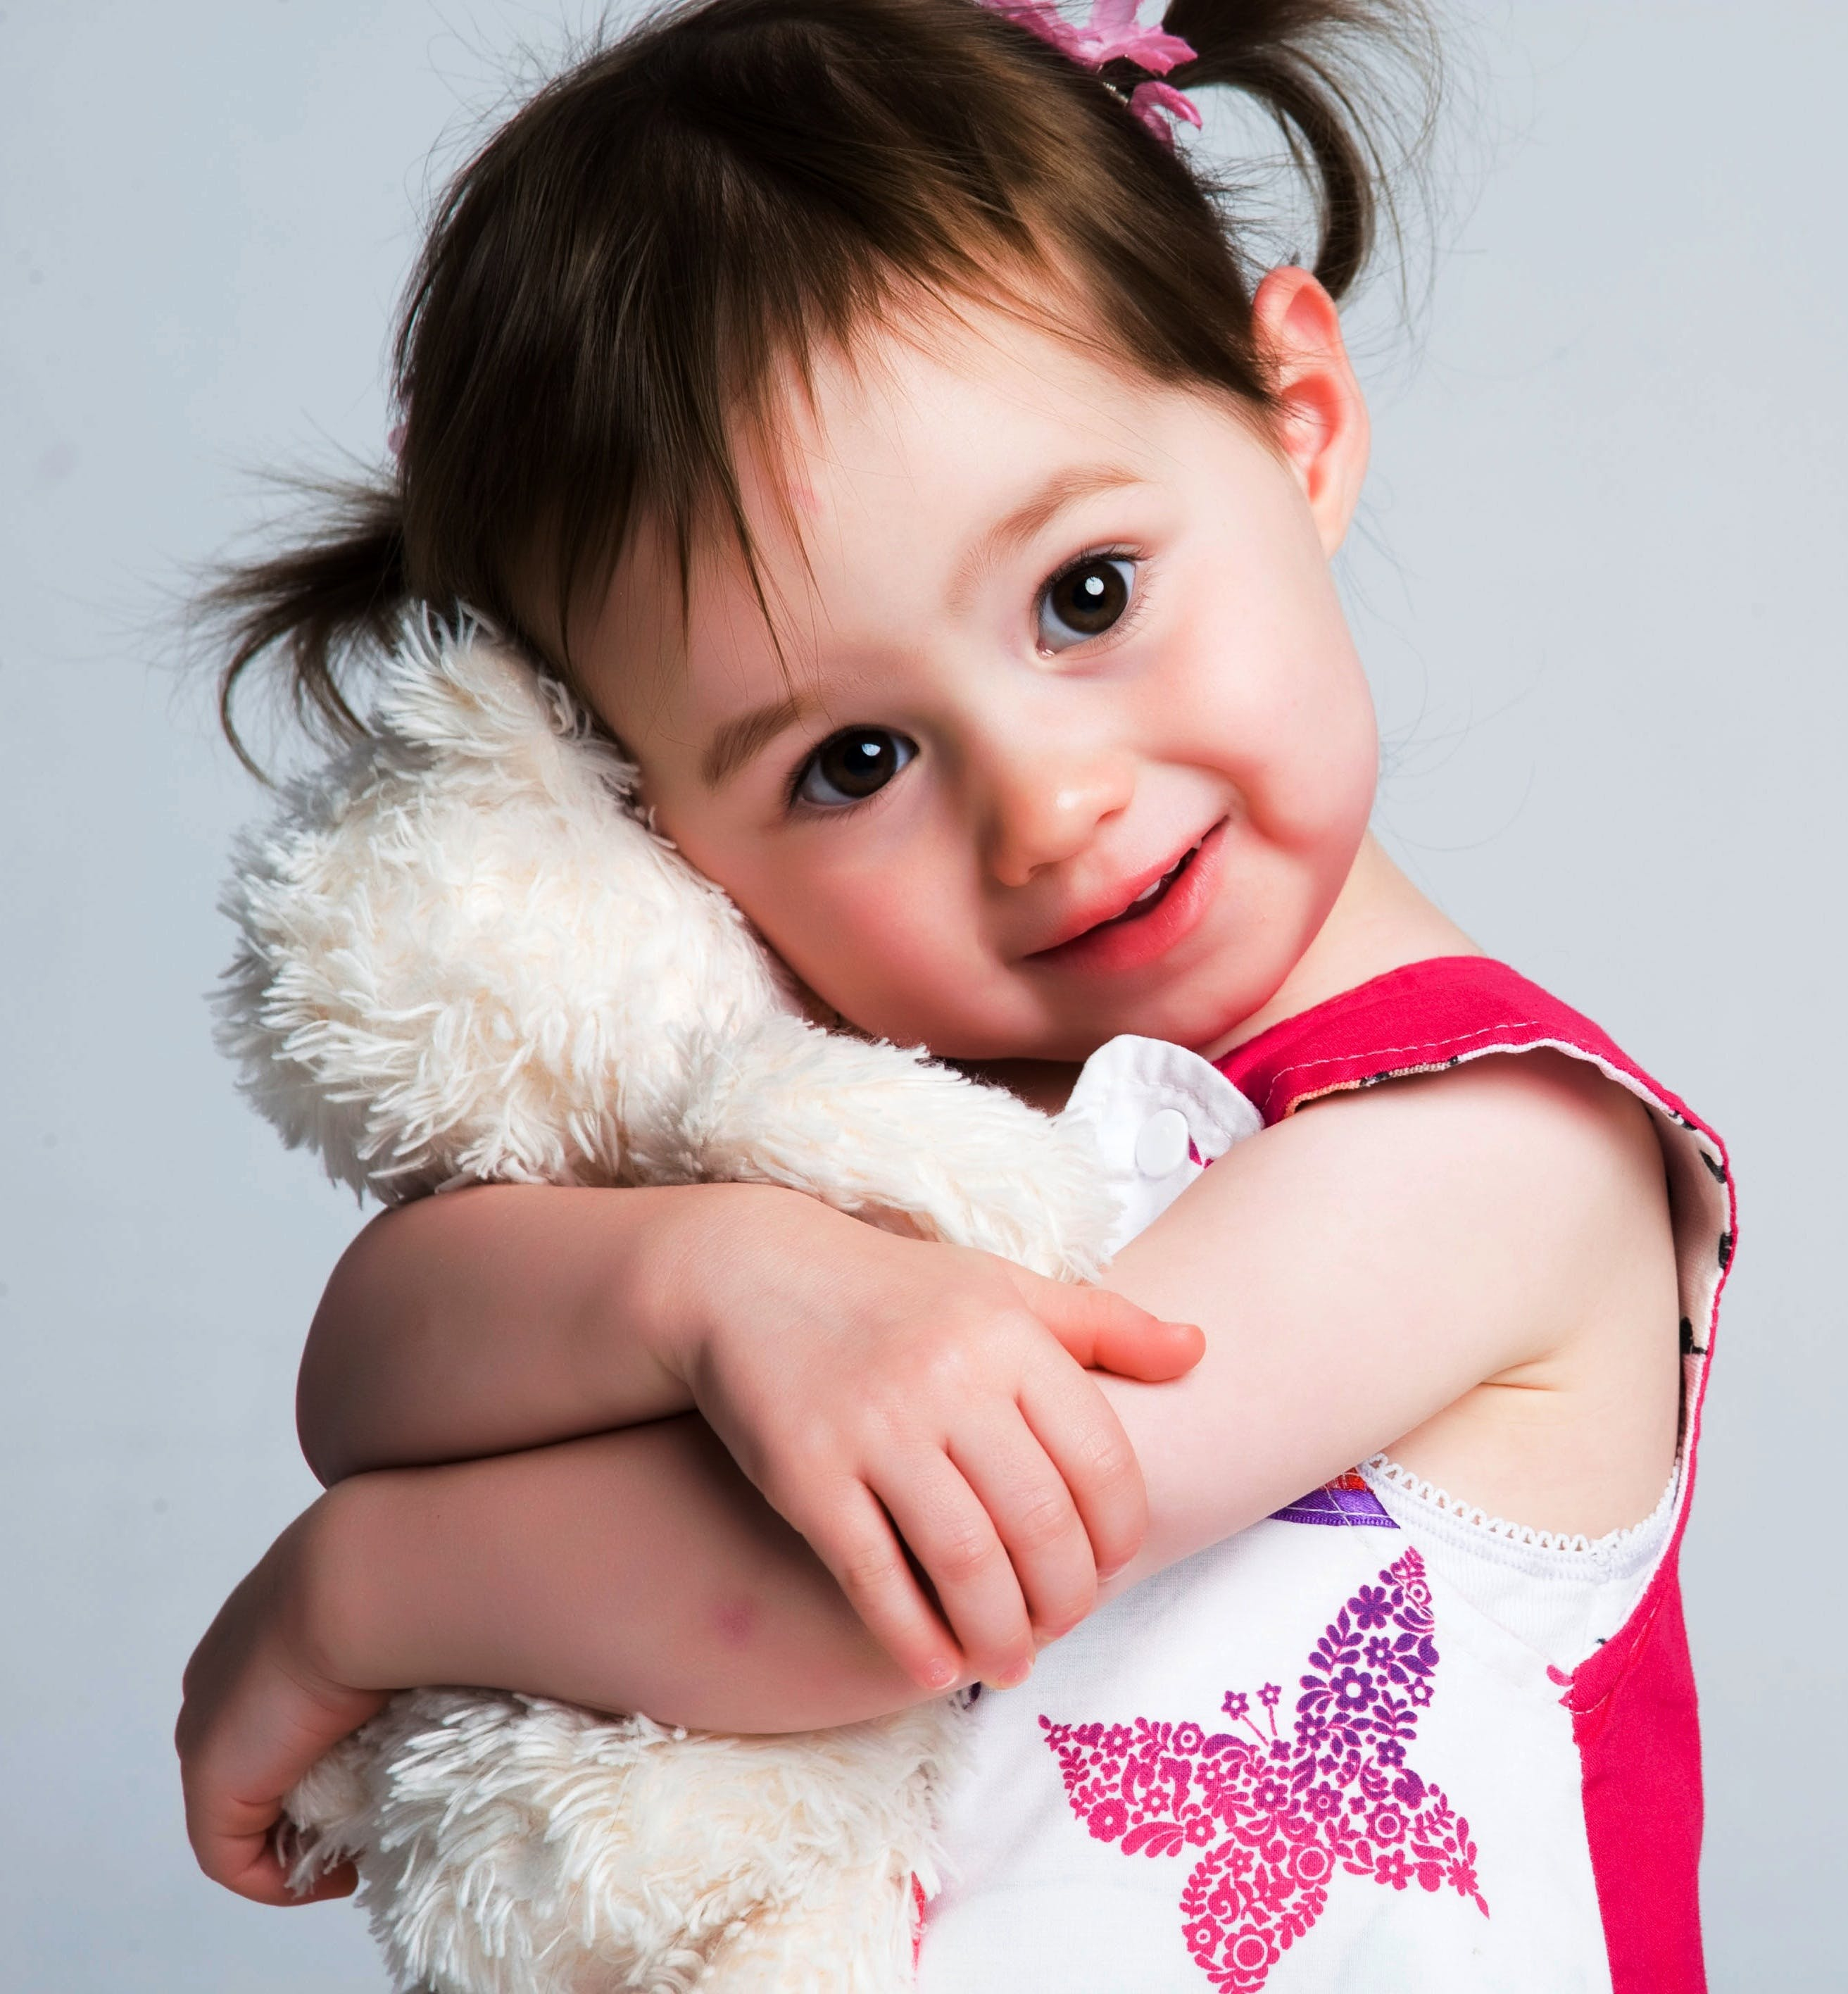 Girl Hugging Plush Toy